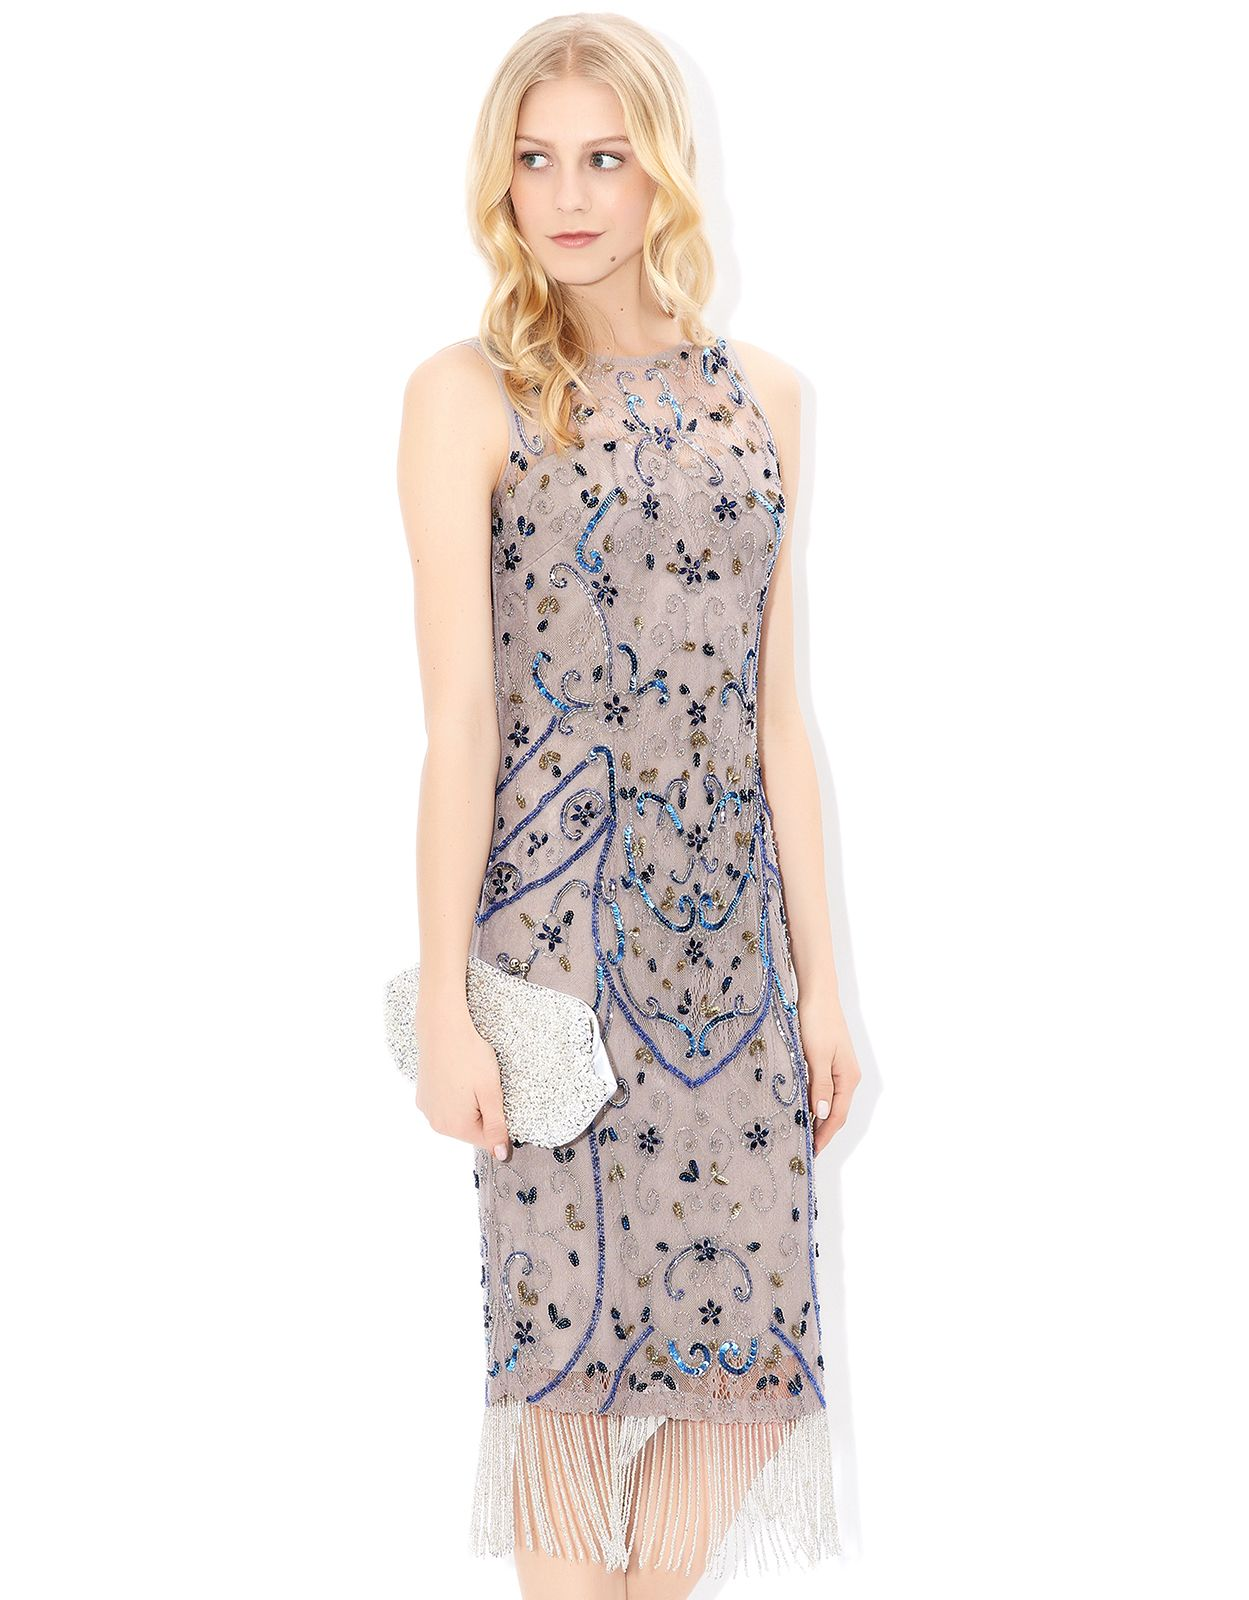 Monsoon mabel dress grey 2 must see tops dresses latest trends monsoon mabel dress grey 2 ombrellifo Choice Image